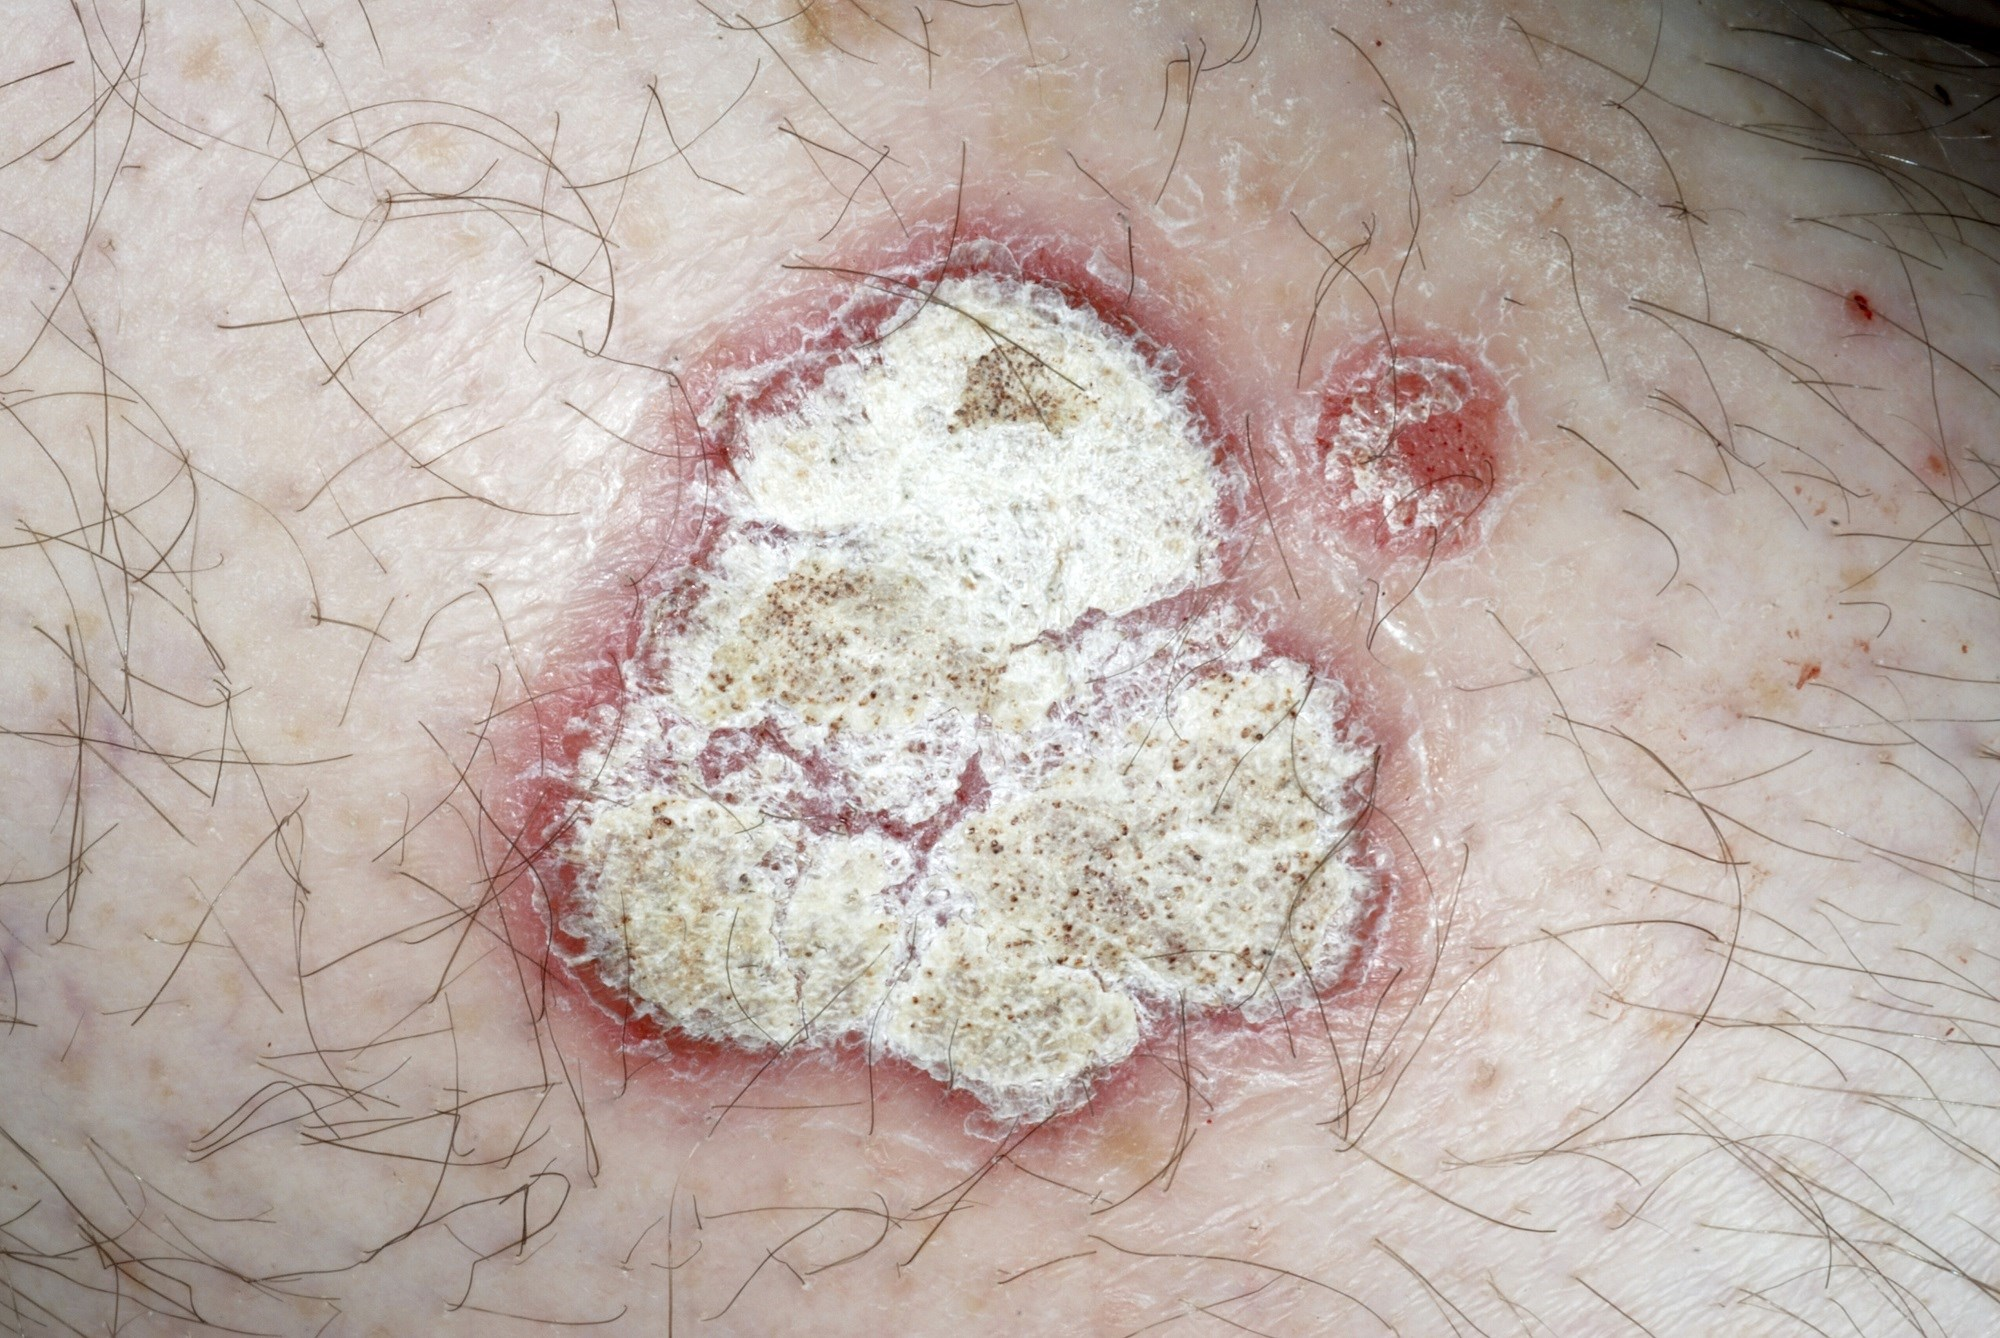 Ixekizumab Deemed Safe, Effective for Plaque Psoriasis in Real-World Study